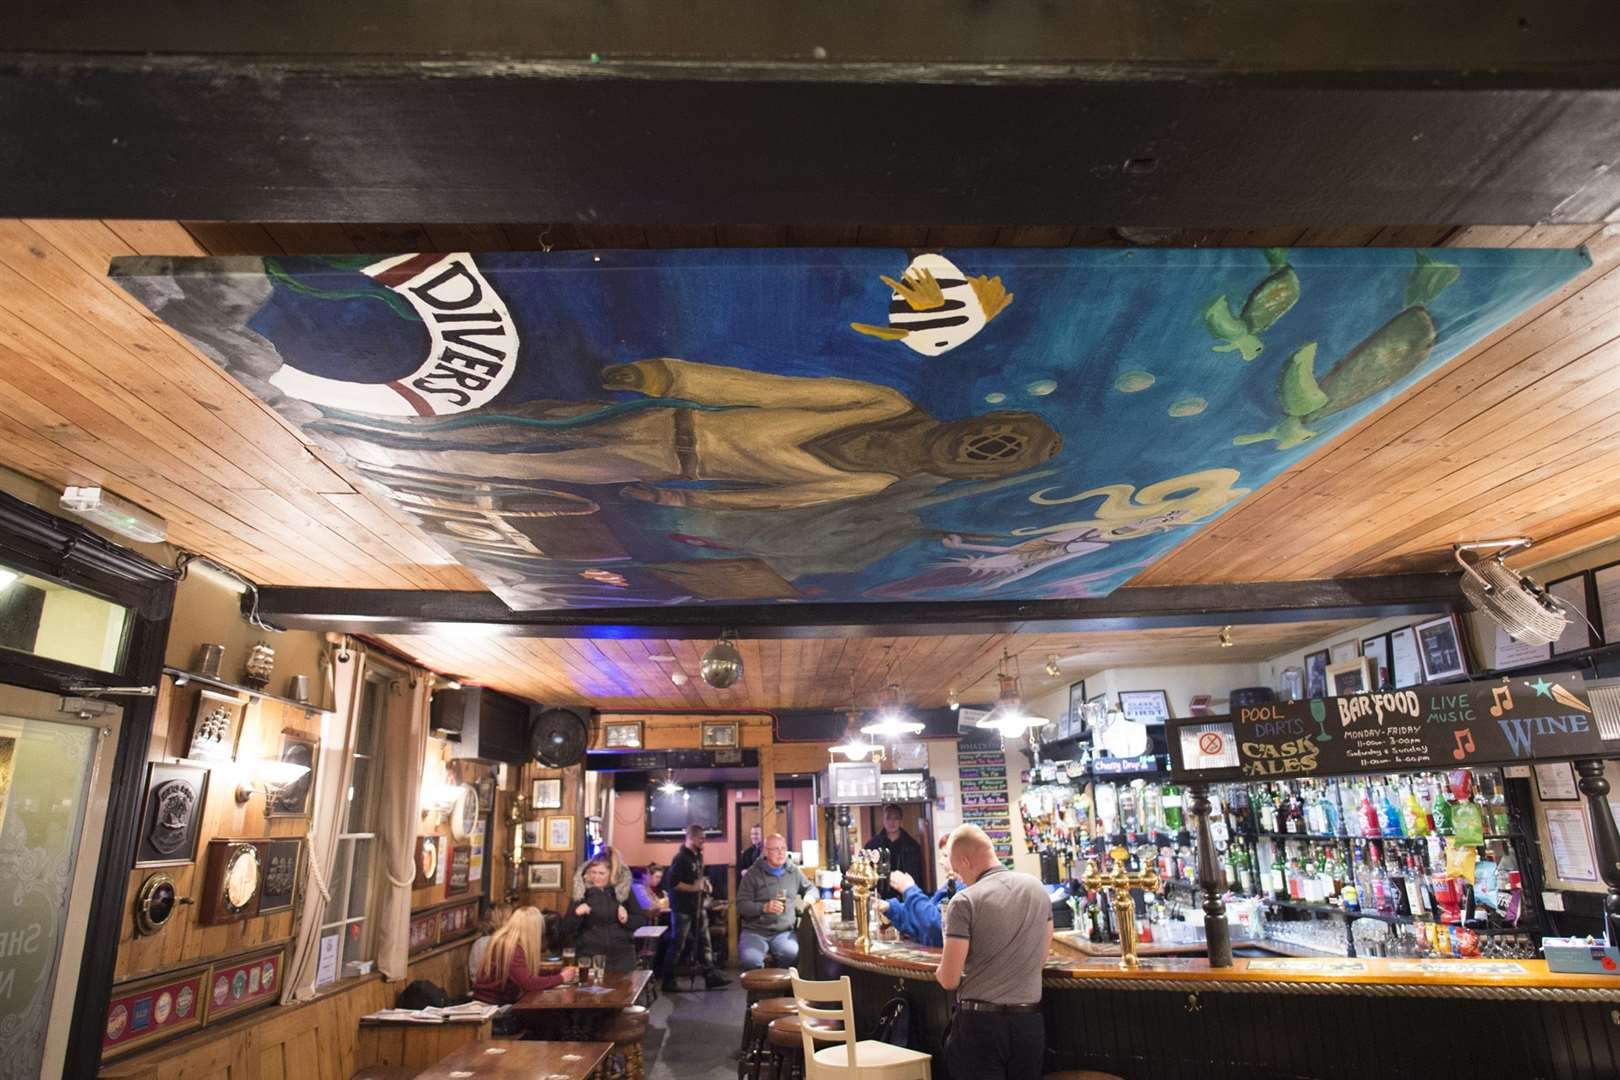 Divers Arms ocean mural suspends from the ceiling